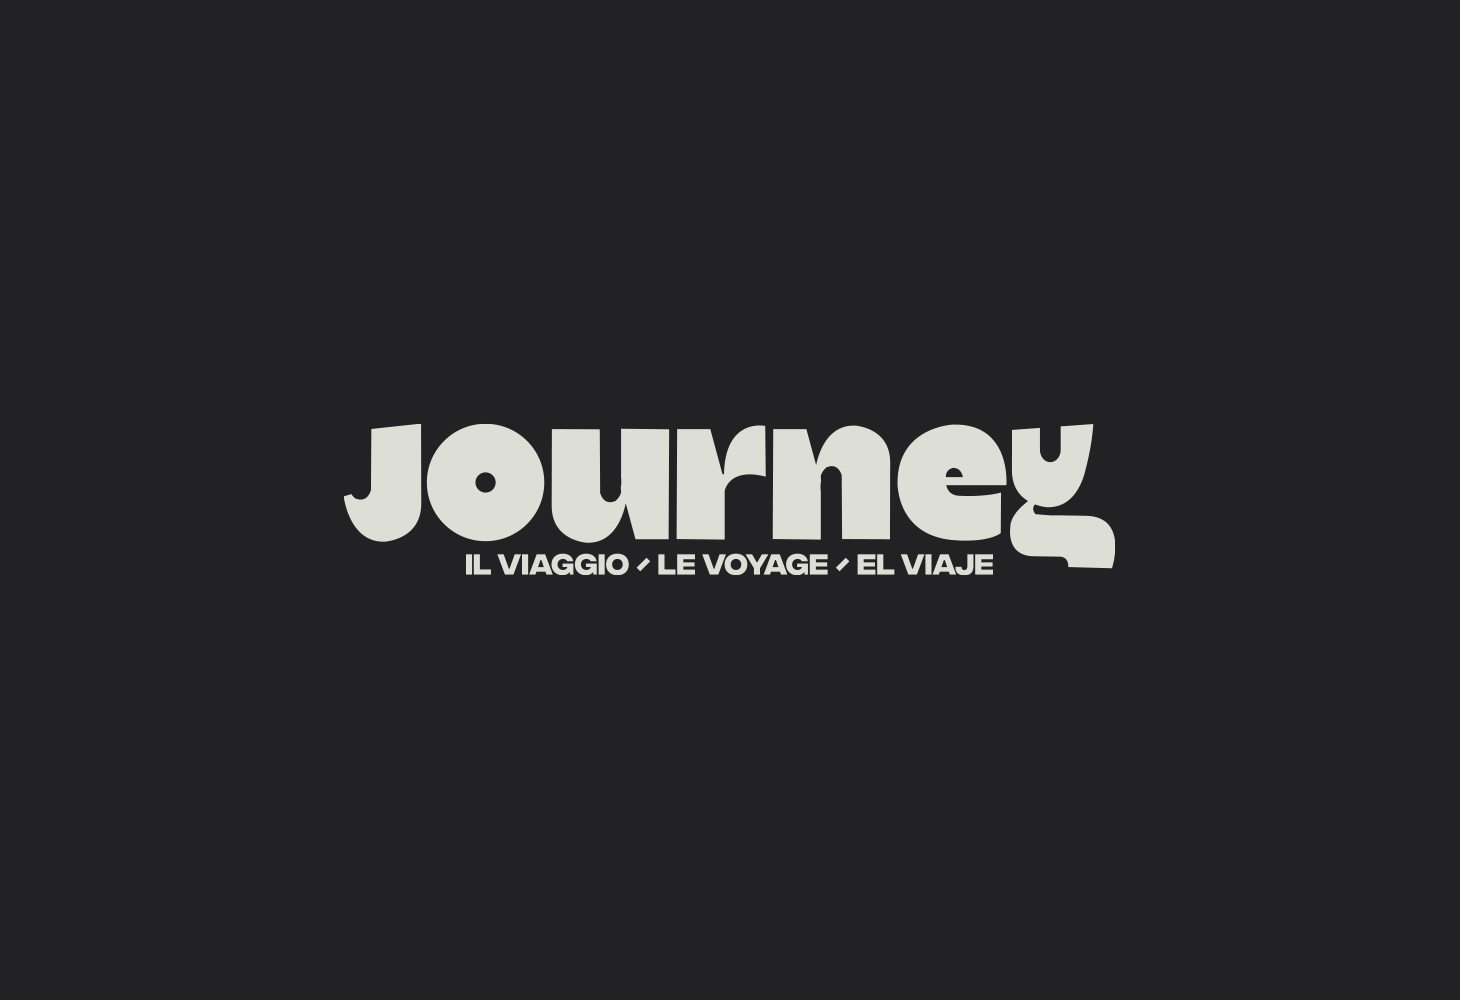 The Journey - Logotype - Original